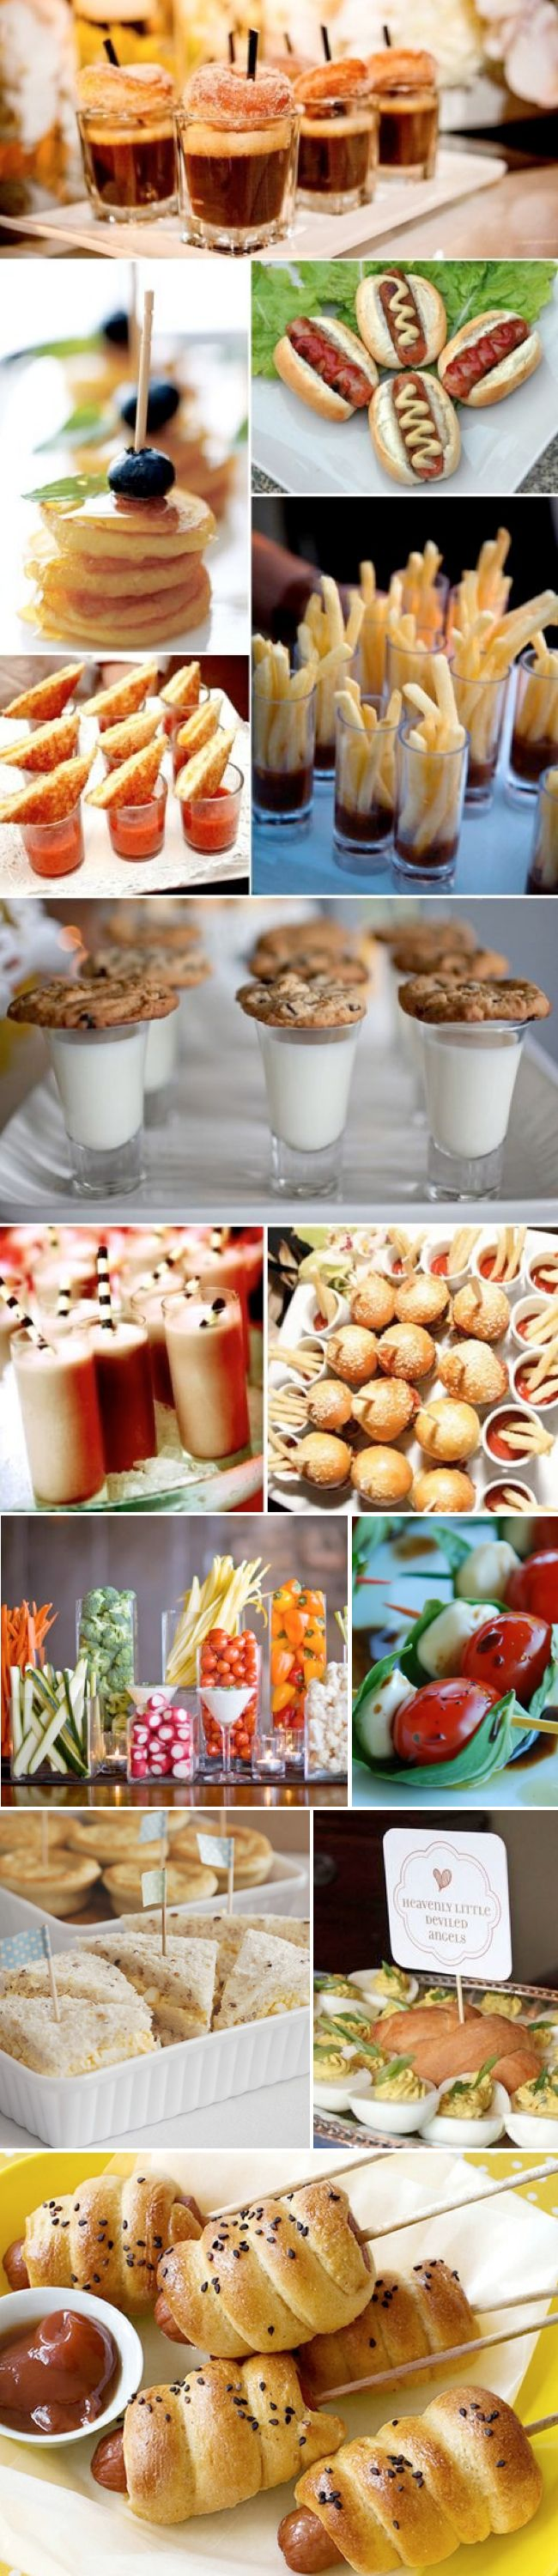 Cocktail party ideas Event Inspiration Pinterest